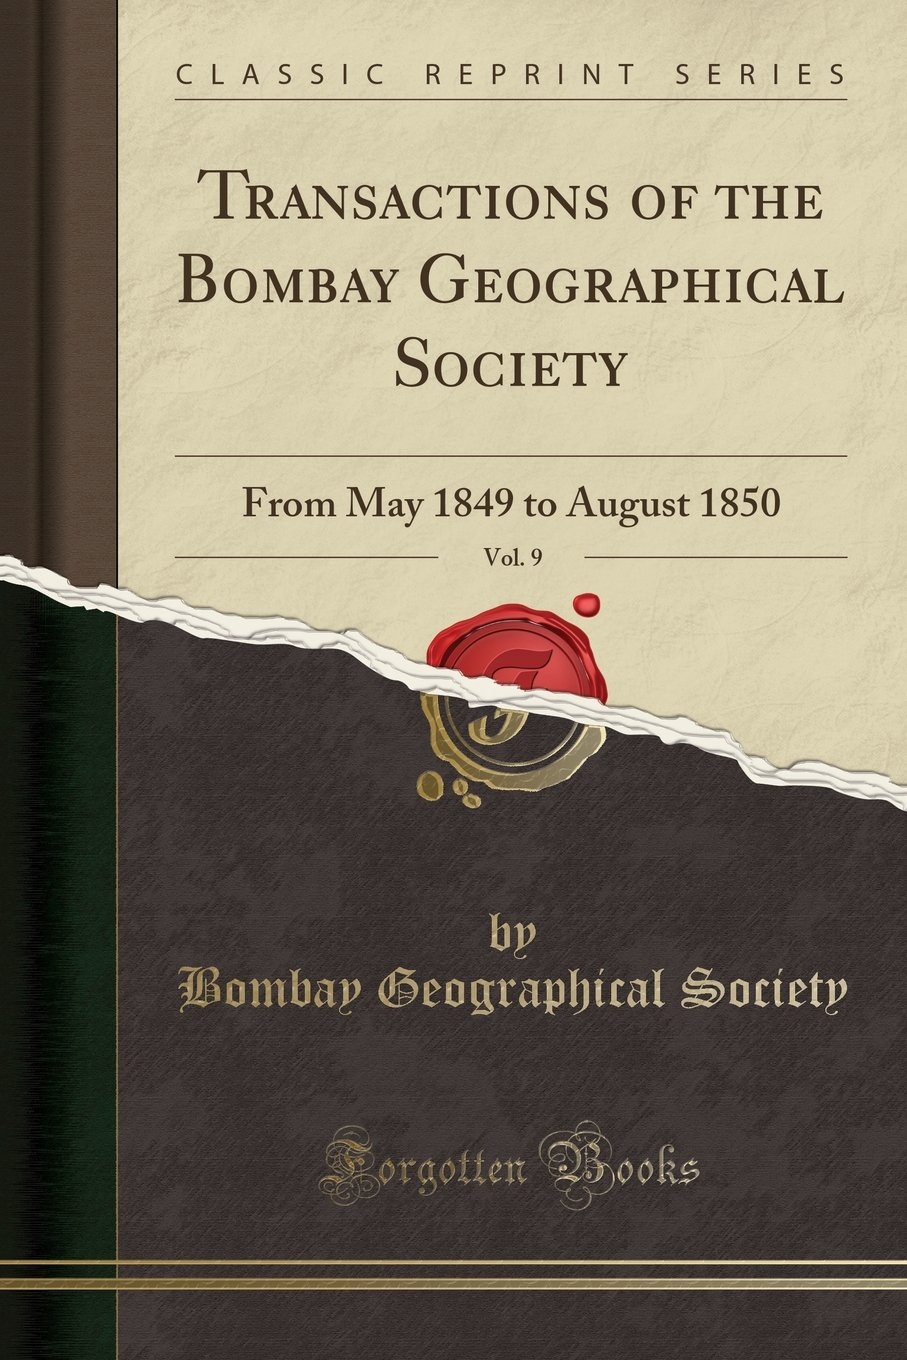 Transactions of the Bombay Geographical Society, Vol. 9: From May 1849 to August 1850 (Classic Reprint)